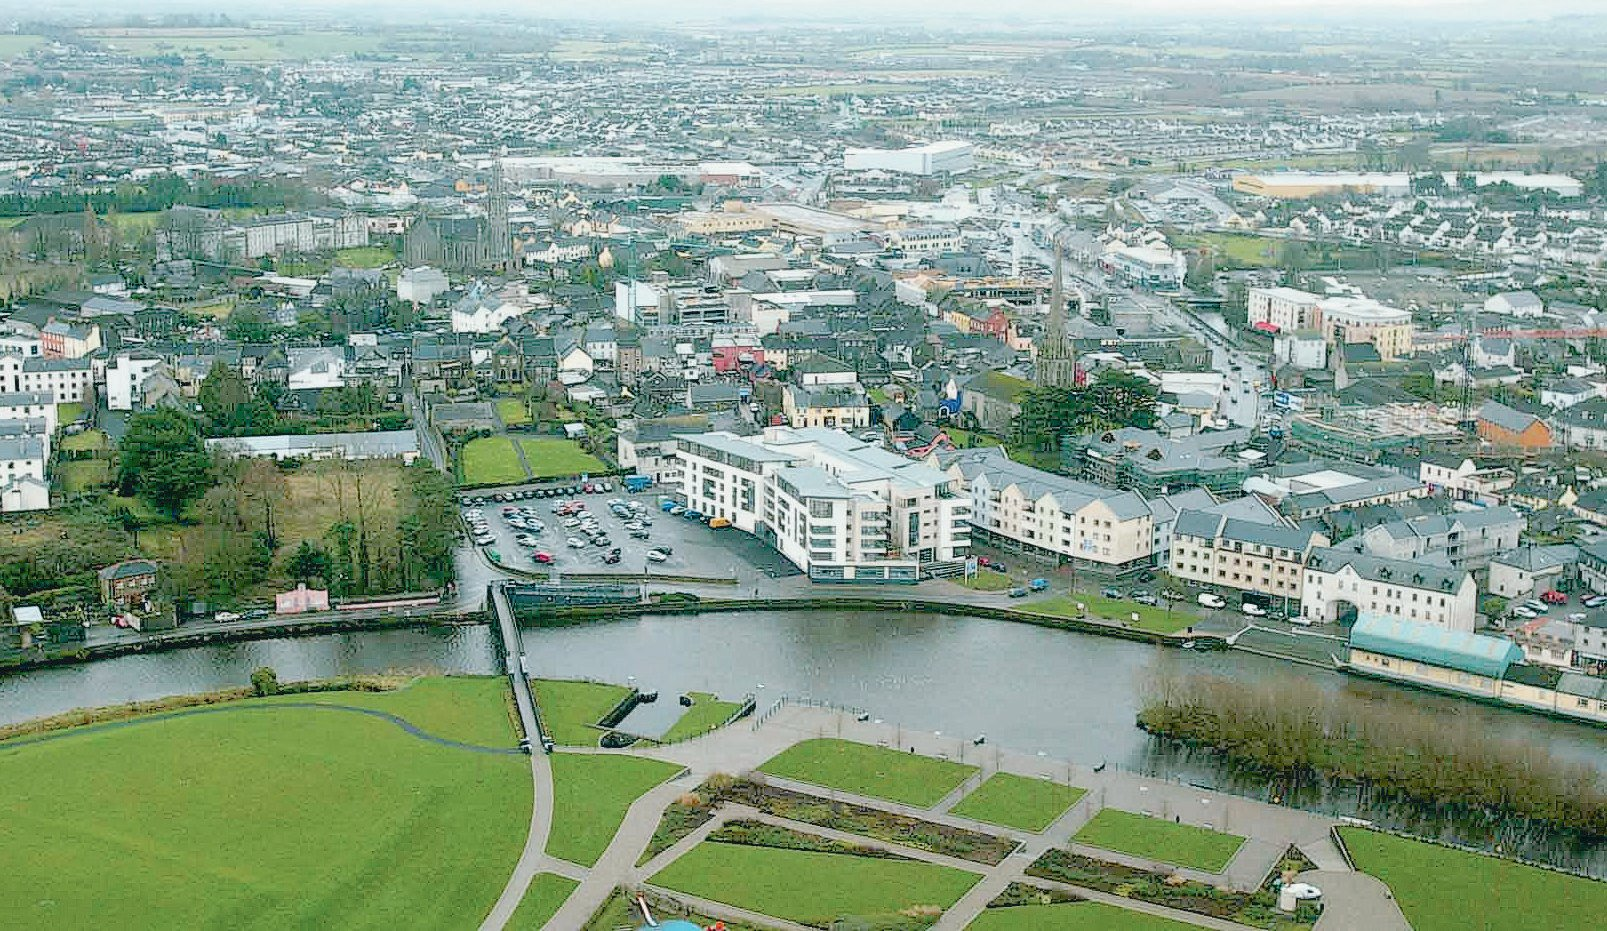 Aerial view of Carlow as published in The Irish Times 15 Feb 2007